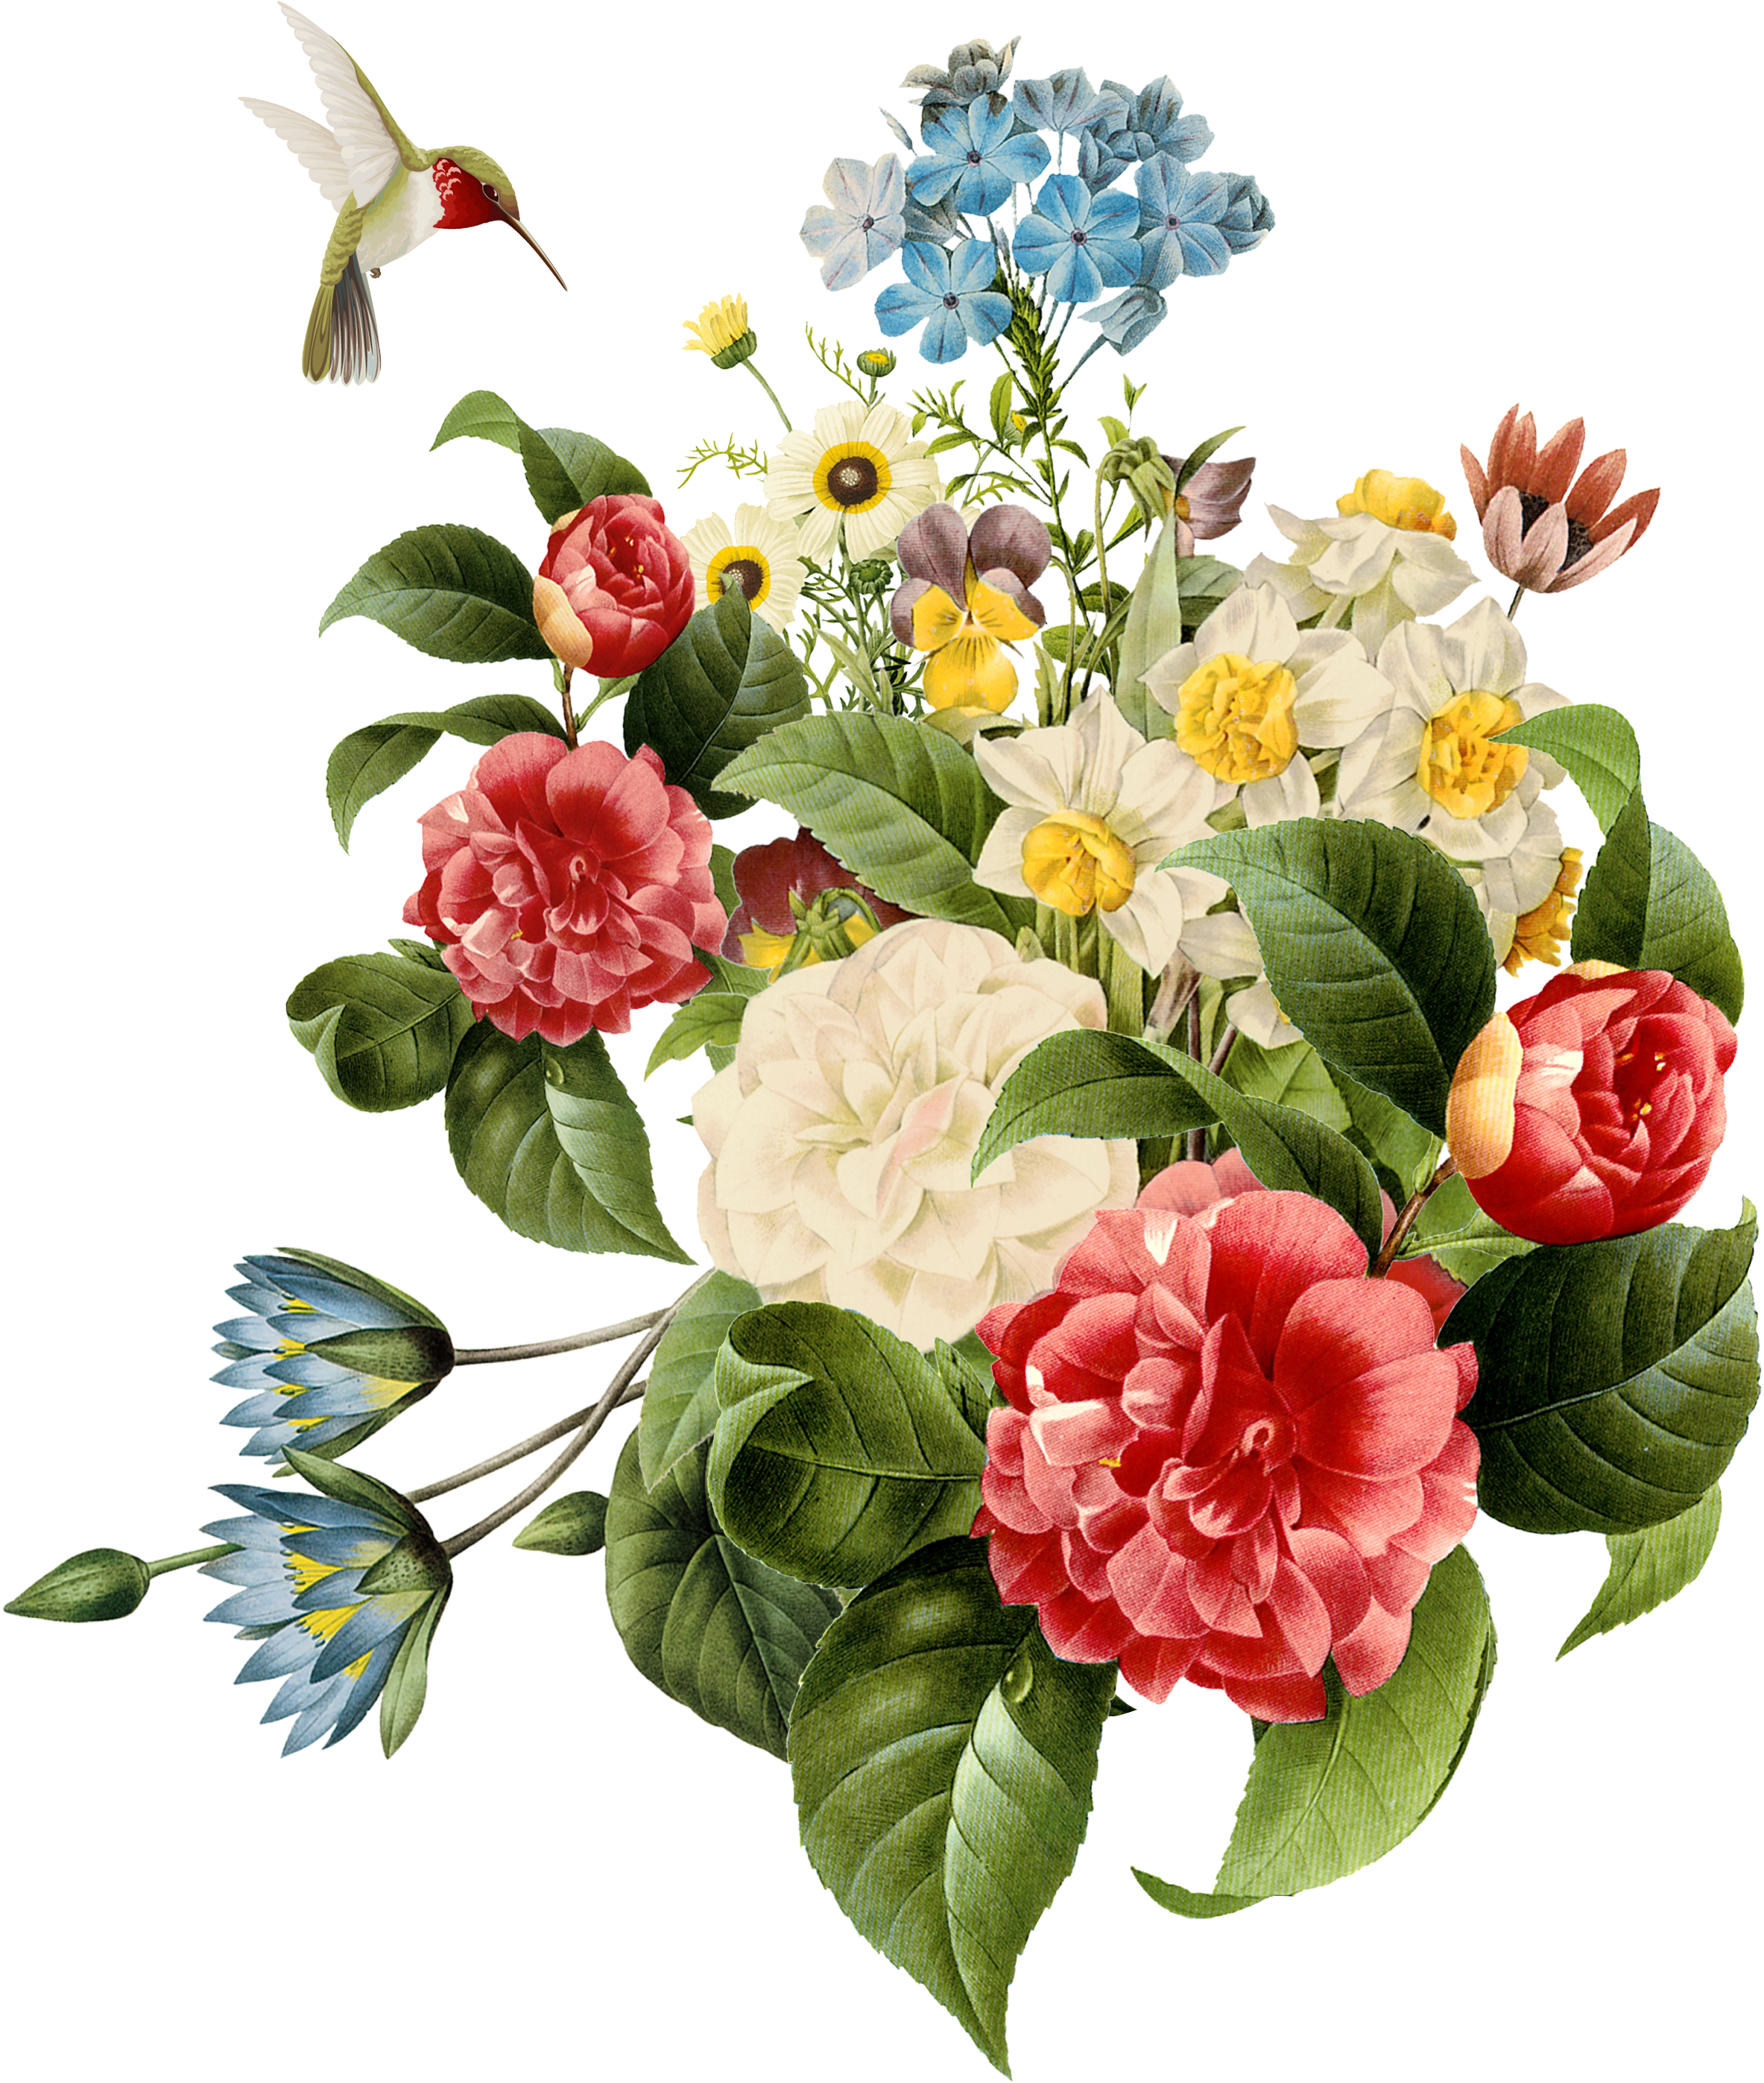 Find Hd Free Png Download Watercolor Flowers Vector Png Images Watercolor Flower Png Tra Watercolor Flower Vector Floral Design Drawing Flower Drawing Design